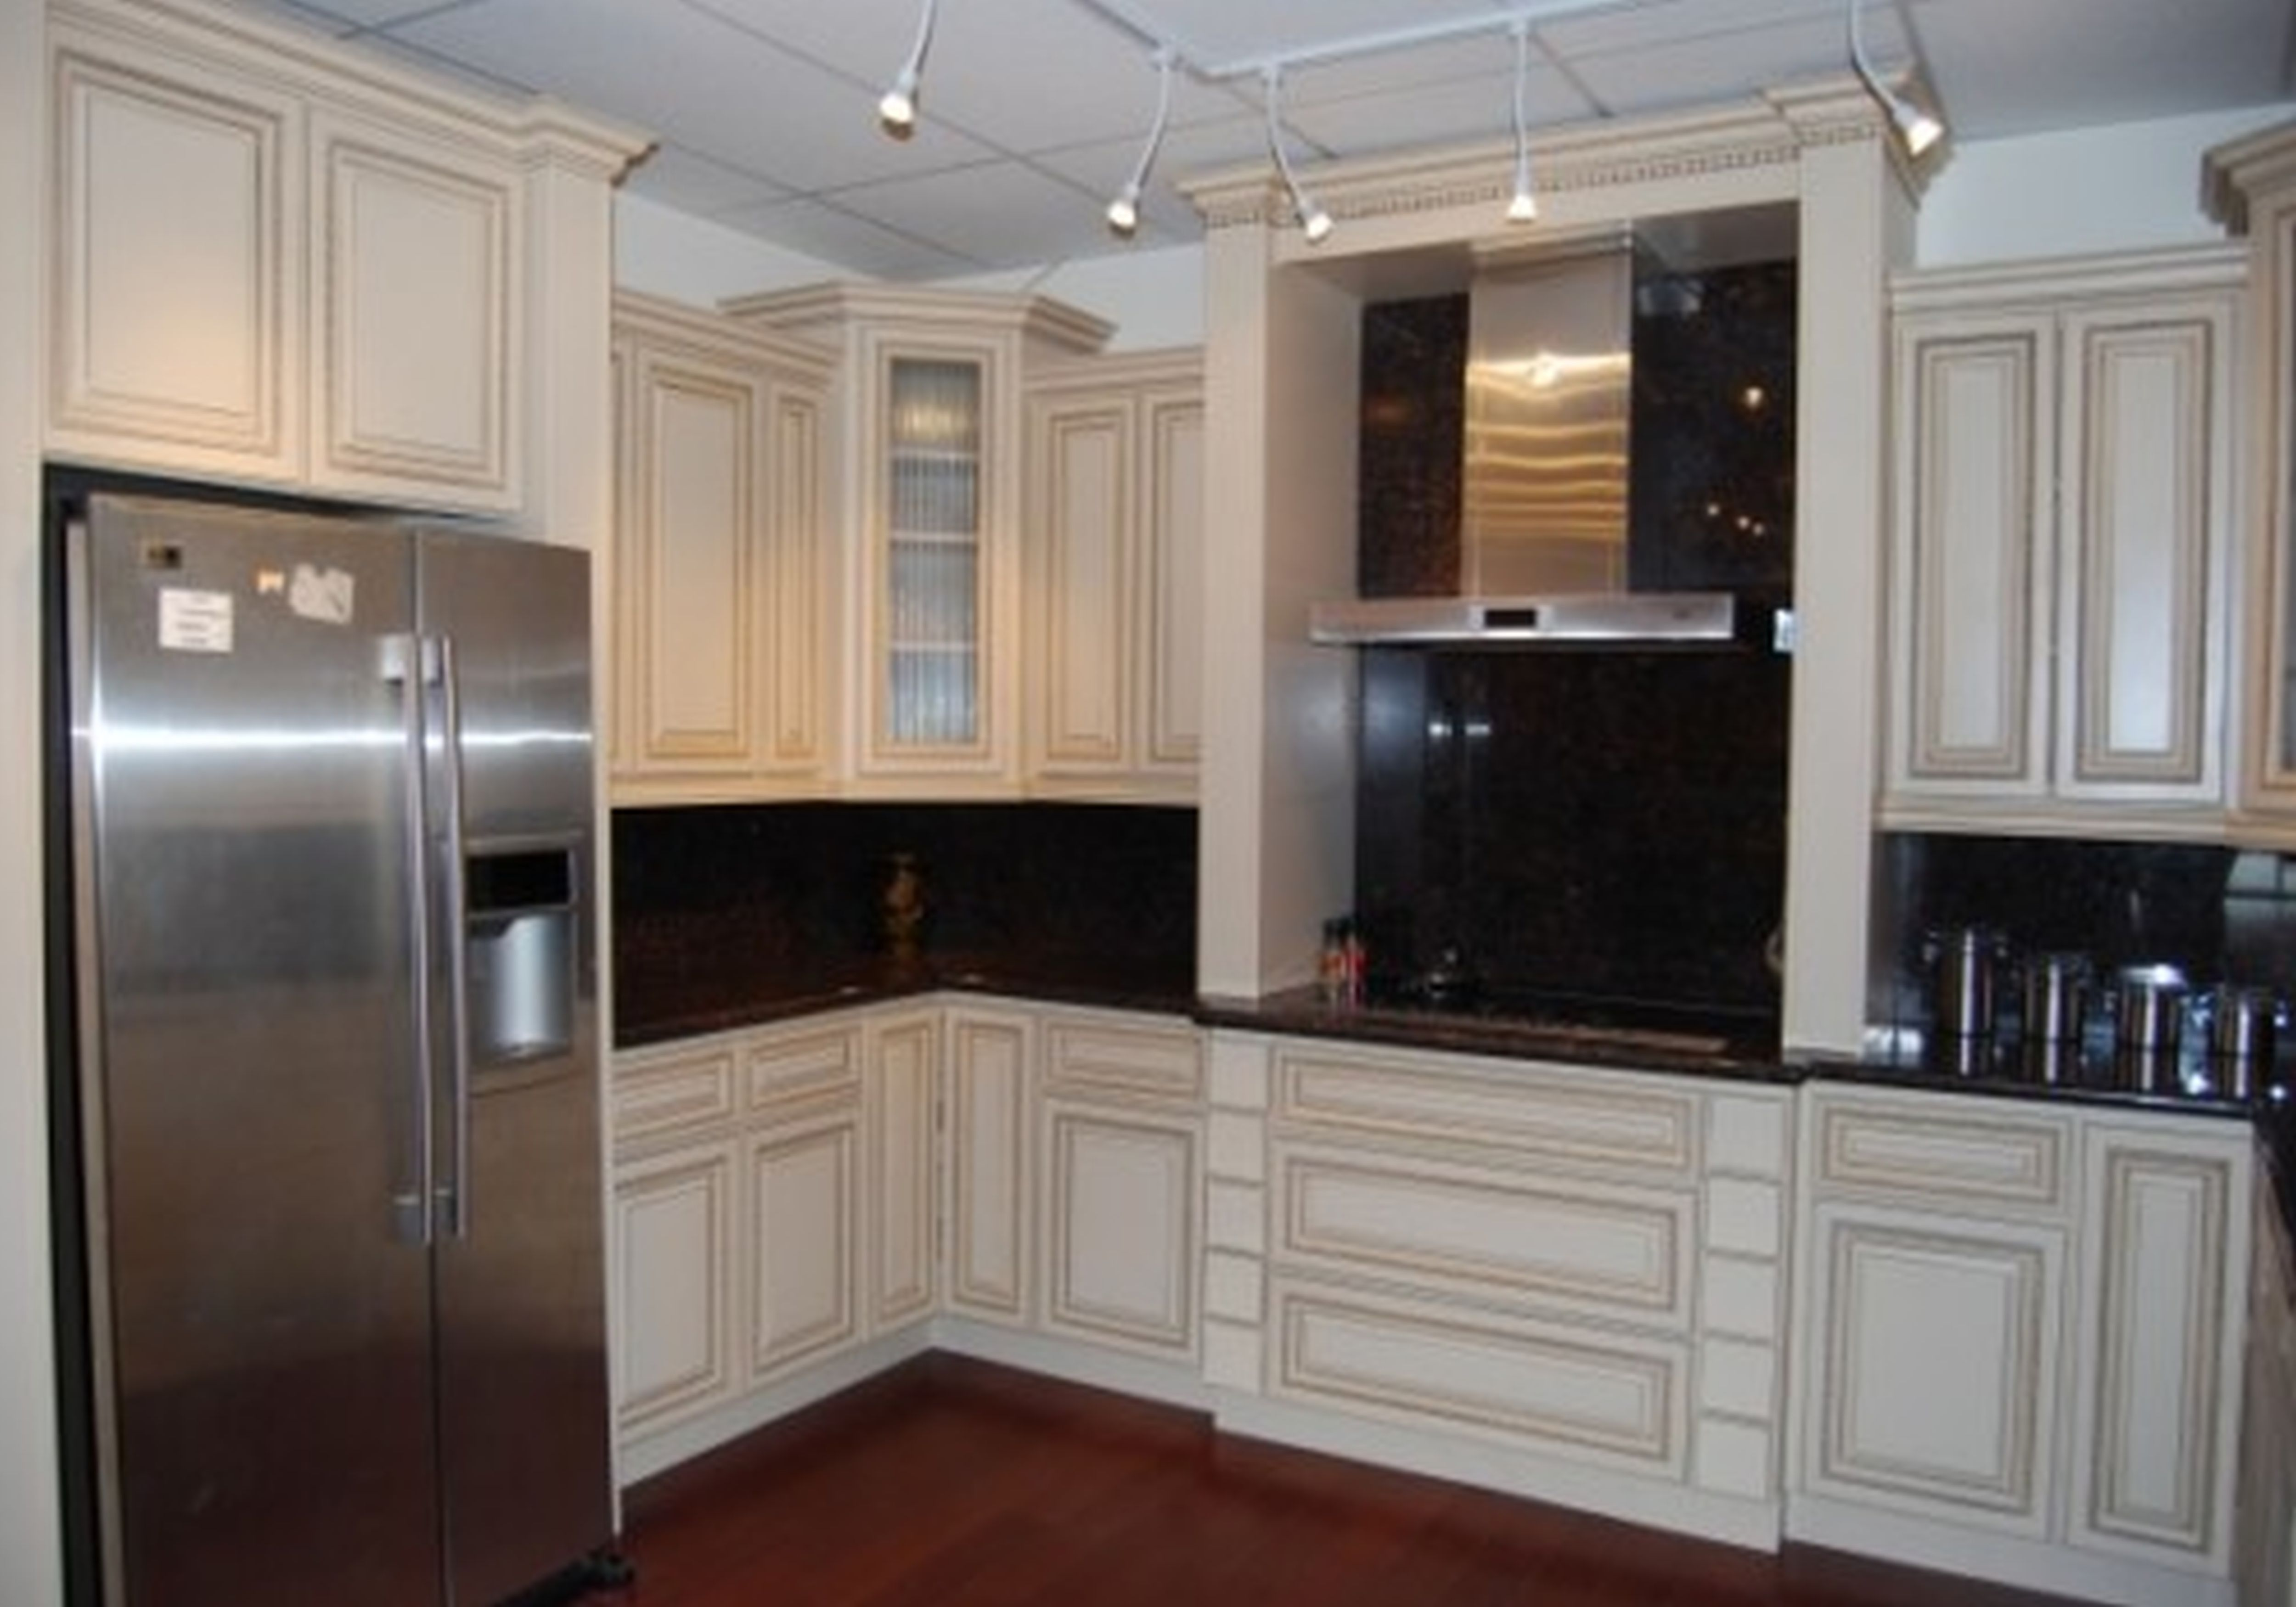 painted white kitchen cabinets Google Search